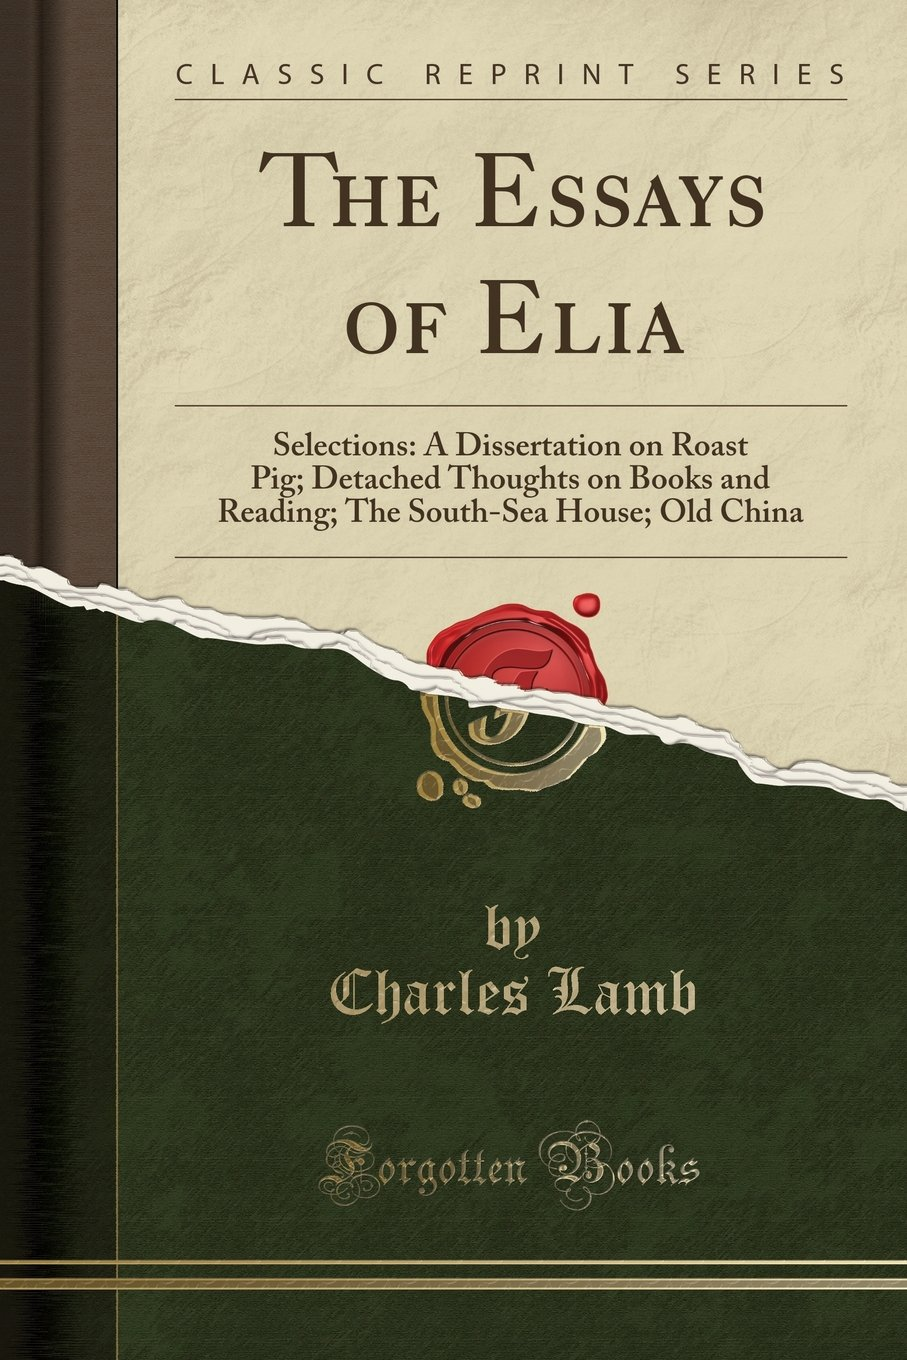 the-essays-of-elia-selections-a-dissertation-on-roast-pig-detached-thoughts-on-books-and-reading-the-south-sea-house-old-china-classic-reprint